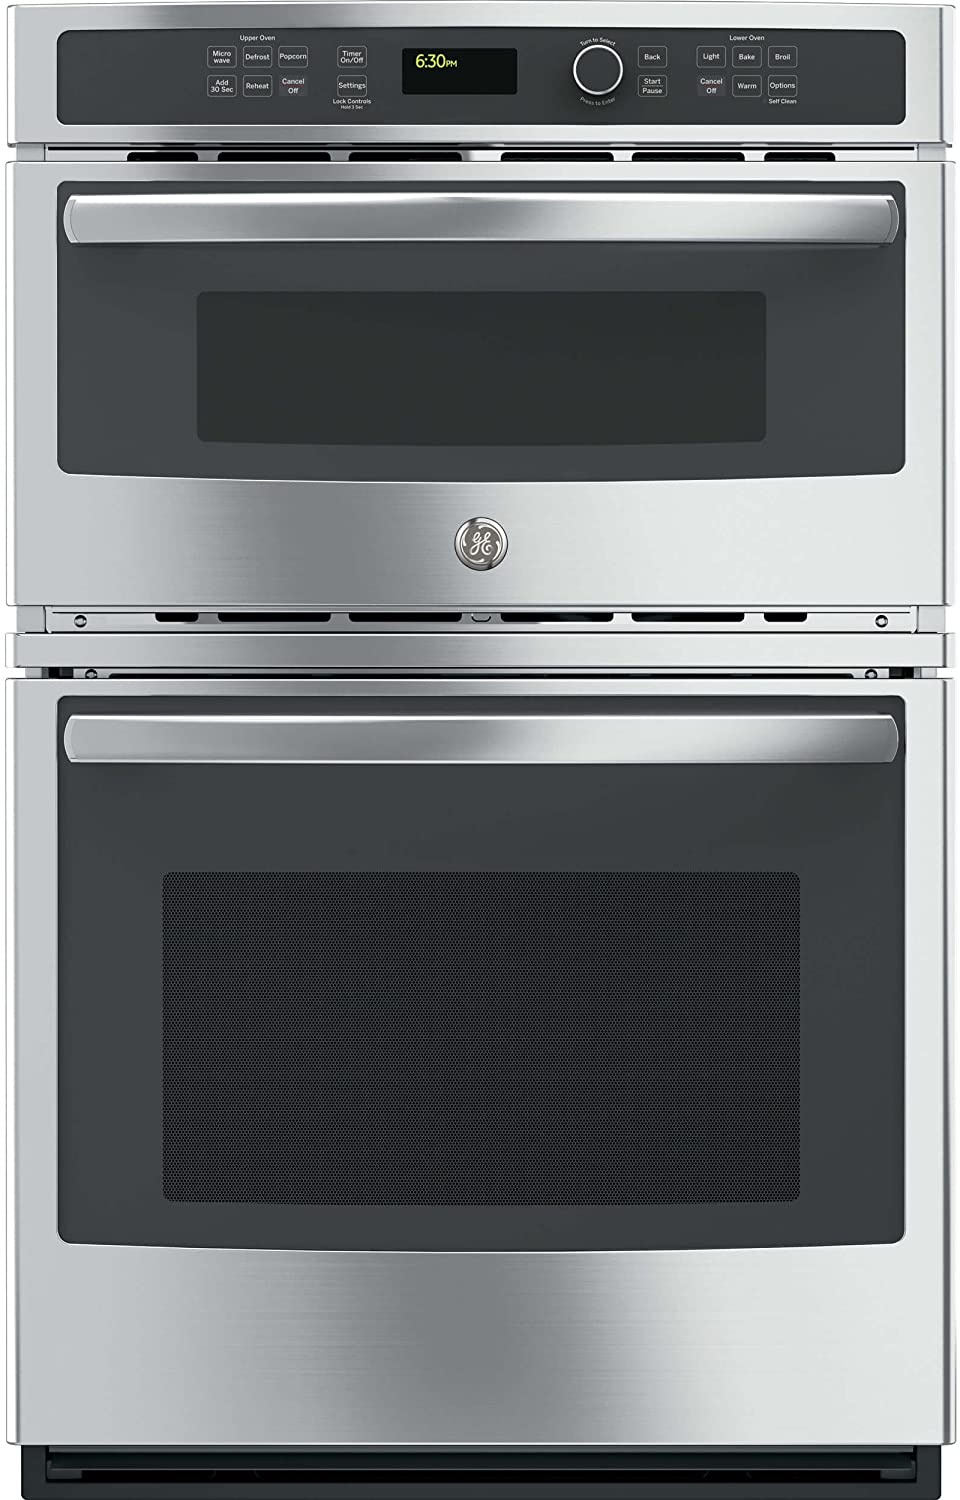 GE JK3800SHSS Stainless Steel Combination Wall Oven